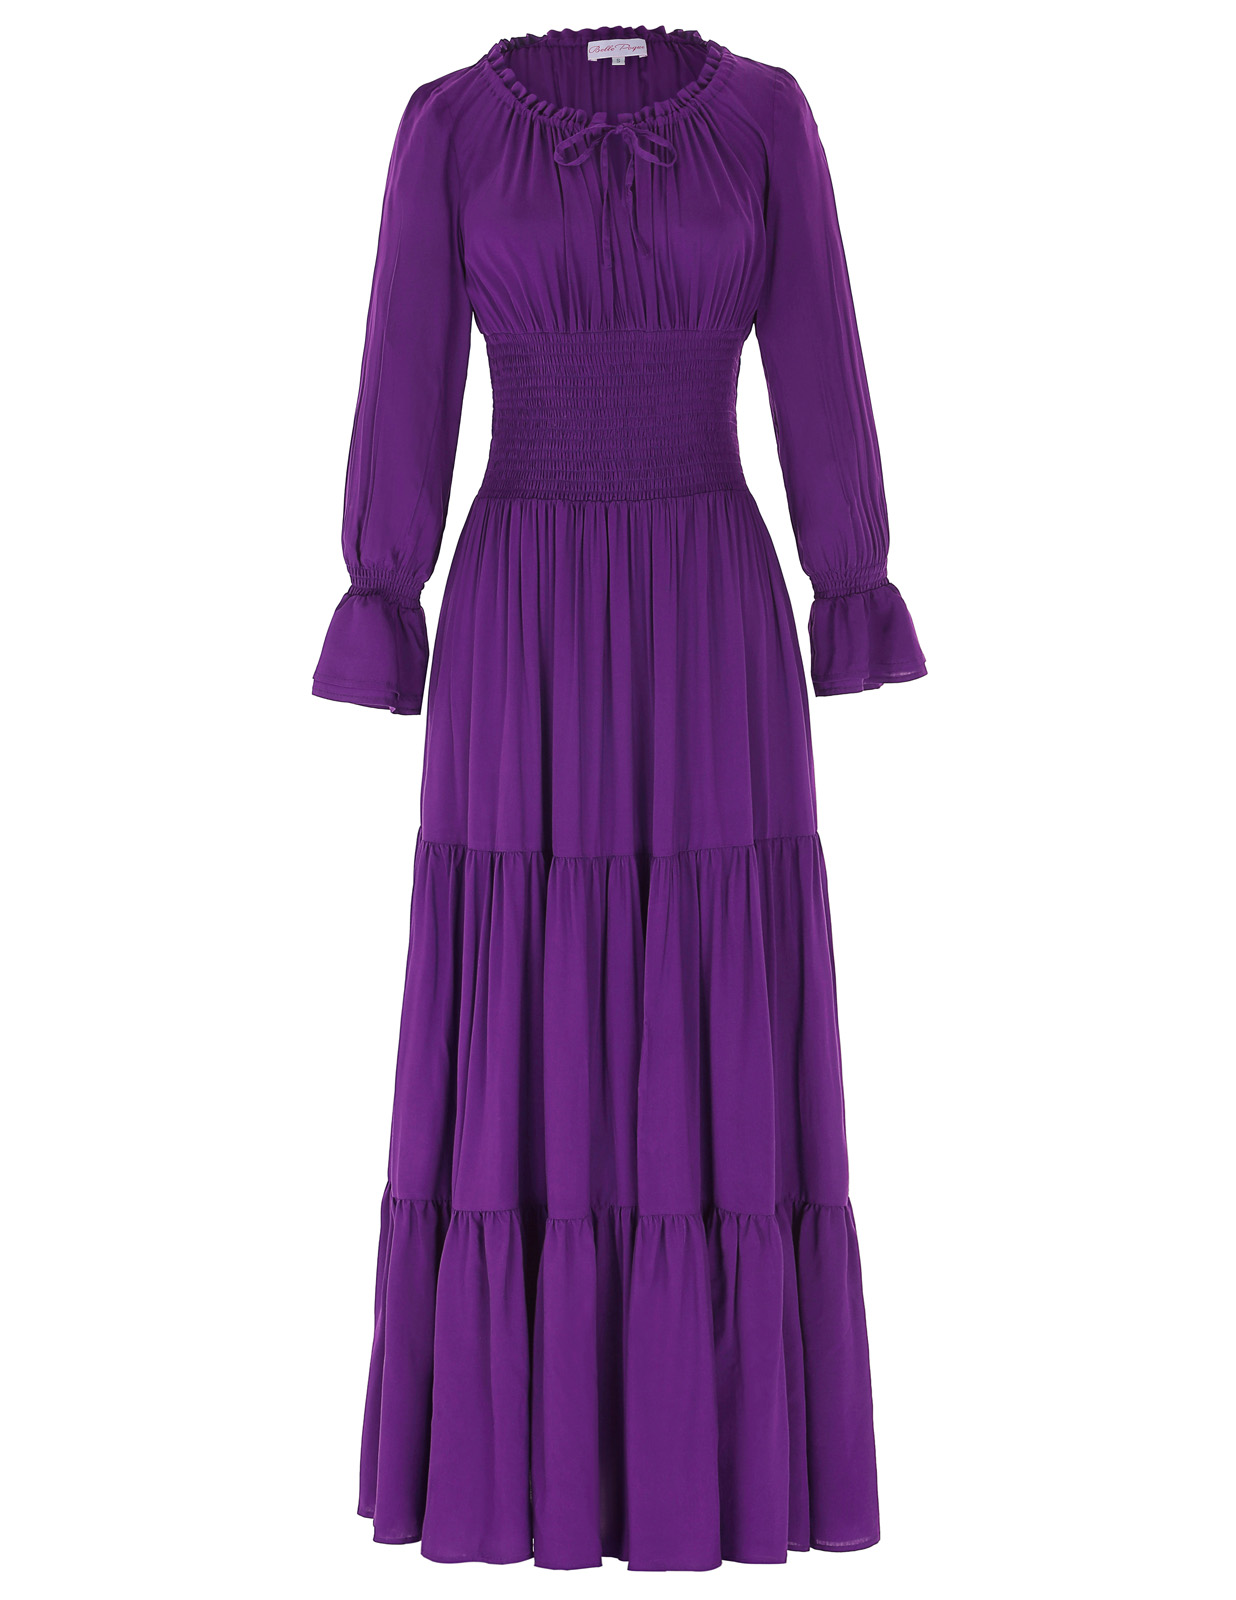 PLUS SIZE Retro Housewife Long Sleeve Punk Gothic Ruffles Prom Gown PARTY Dress